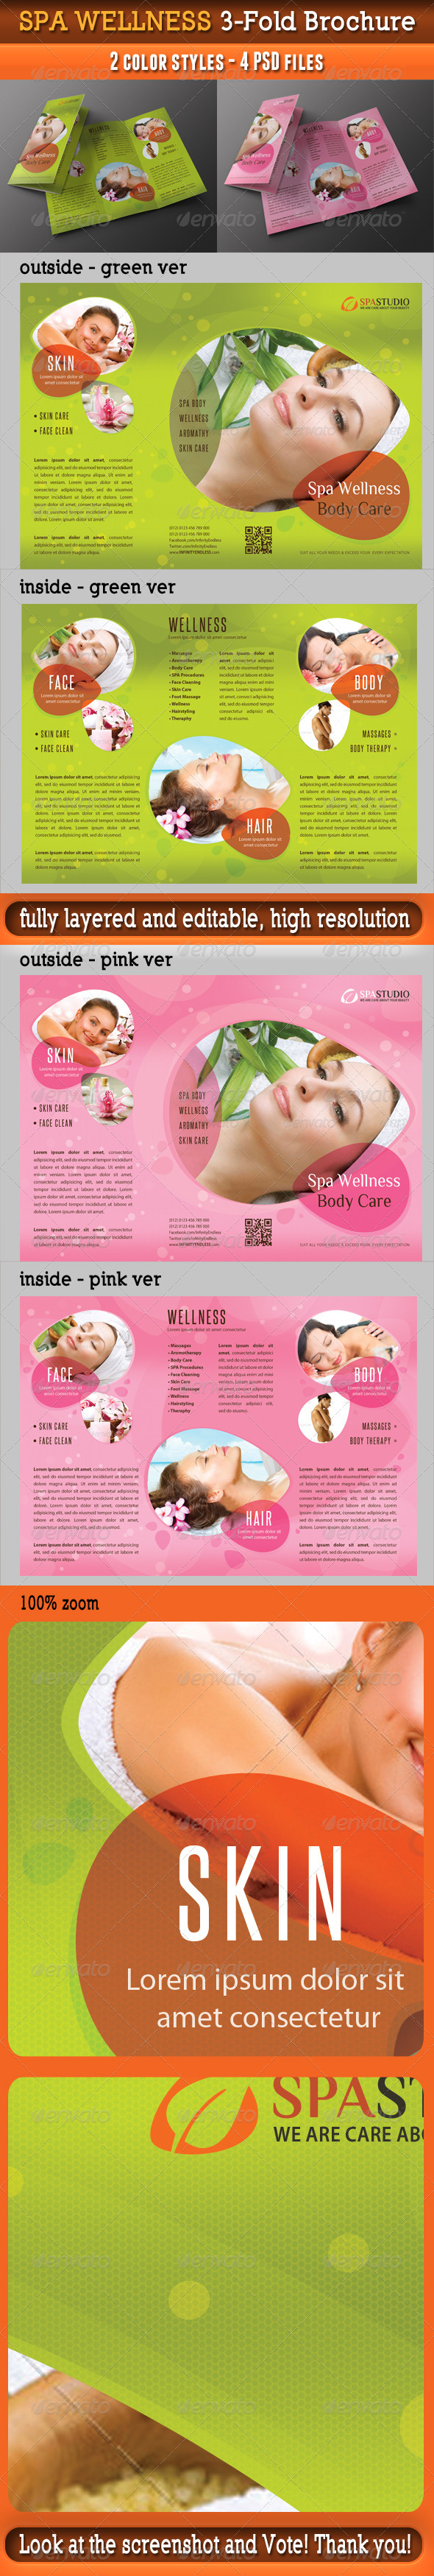 GraphicRiver Spa Wellness 3-Fold Brochure 02 6601425